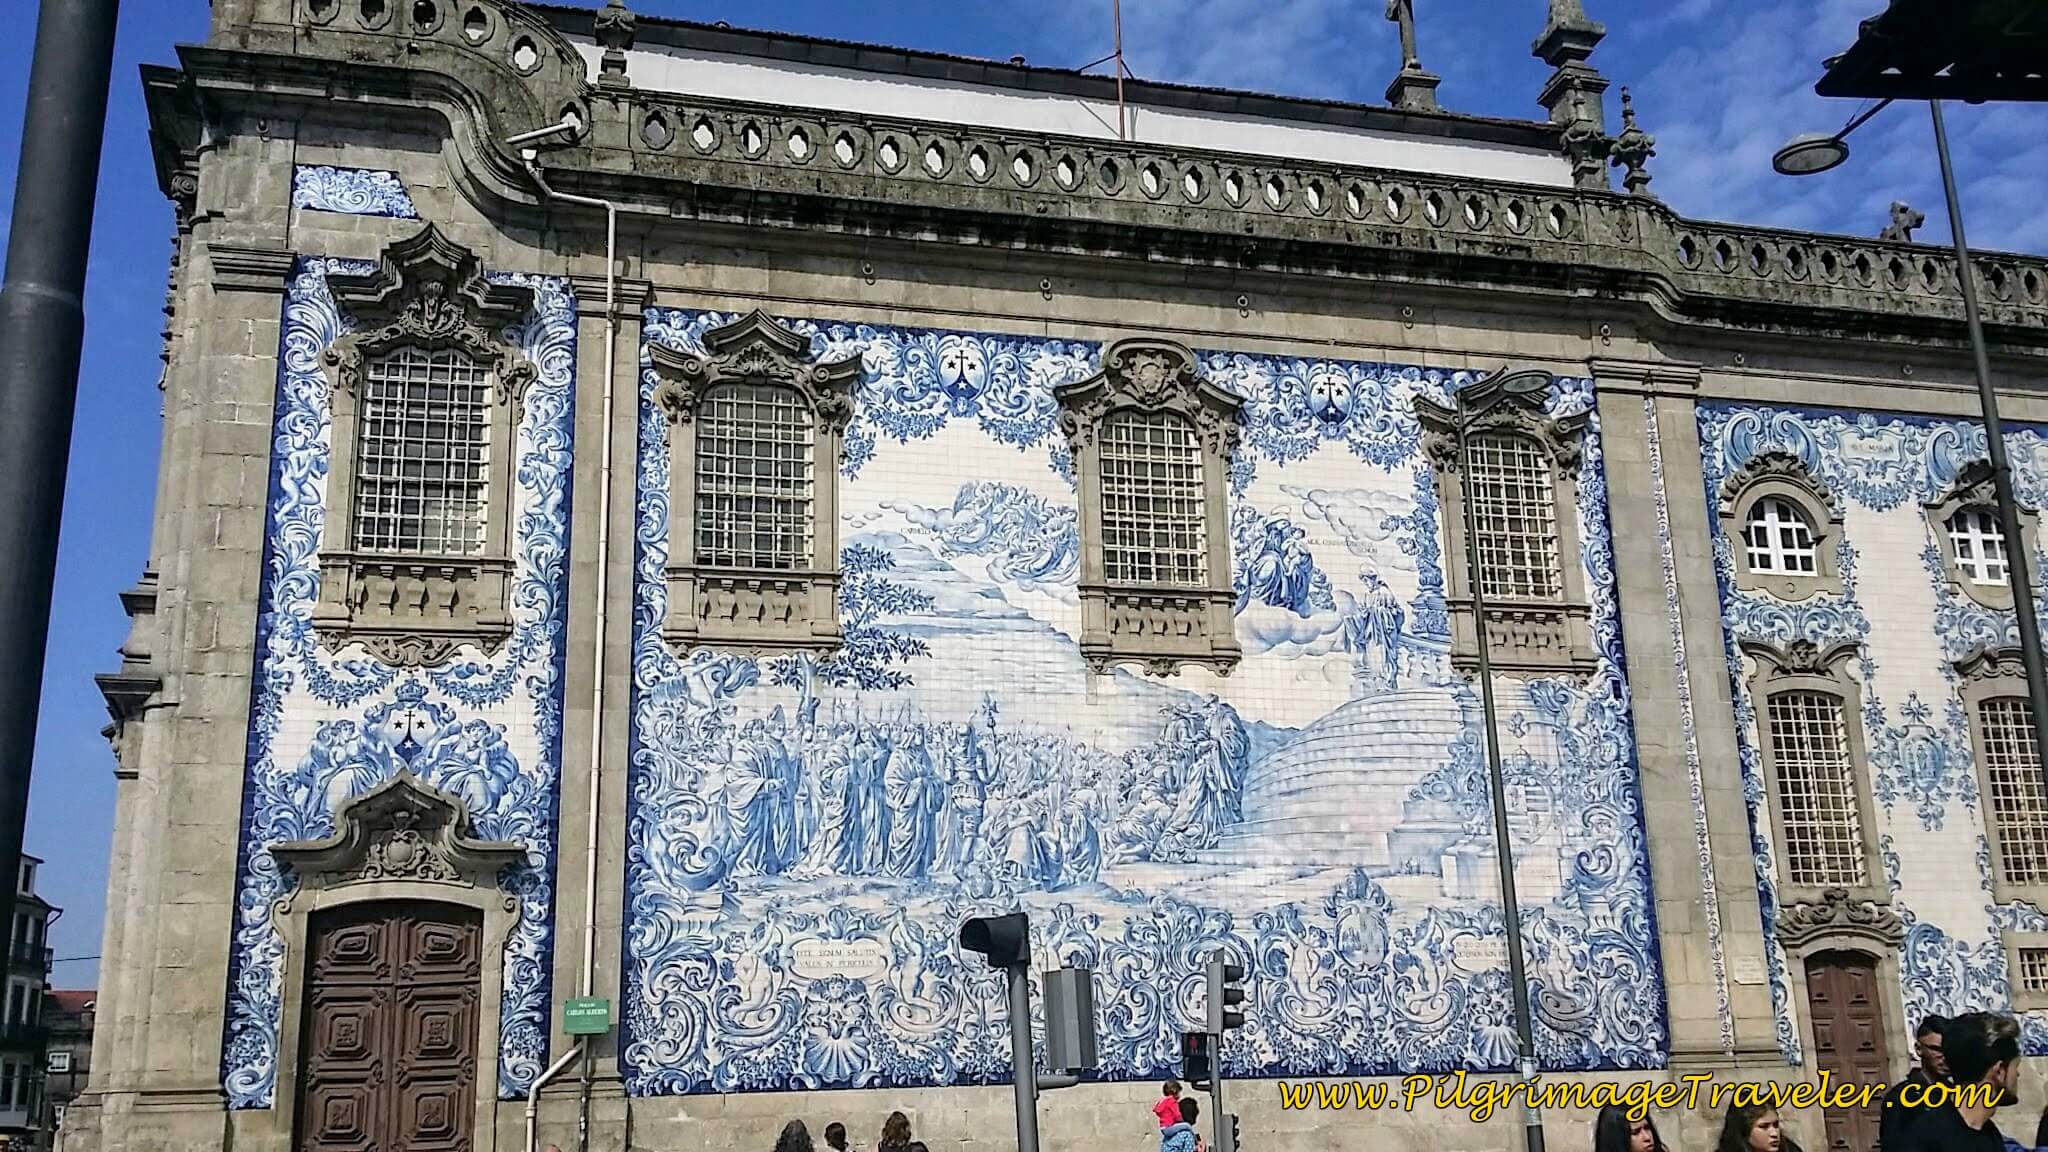 Azulejo Mural of the Igreja do Carmo in Porto, Portugal